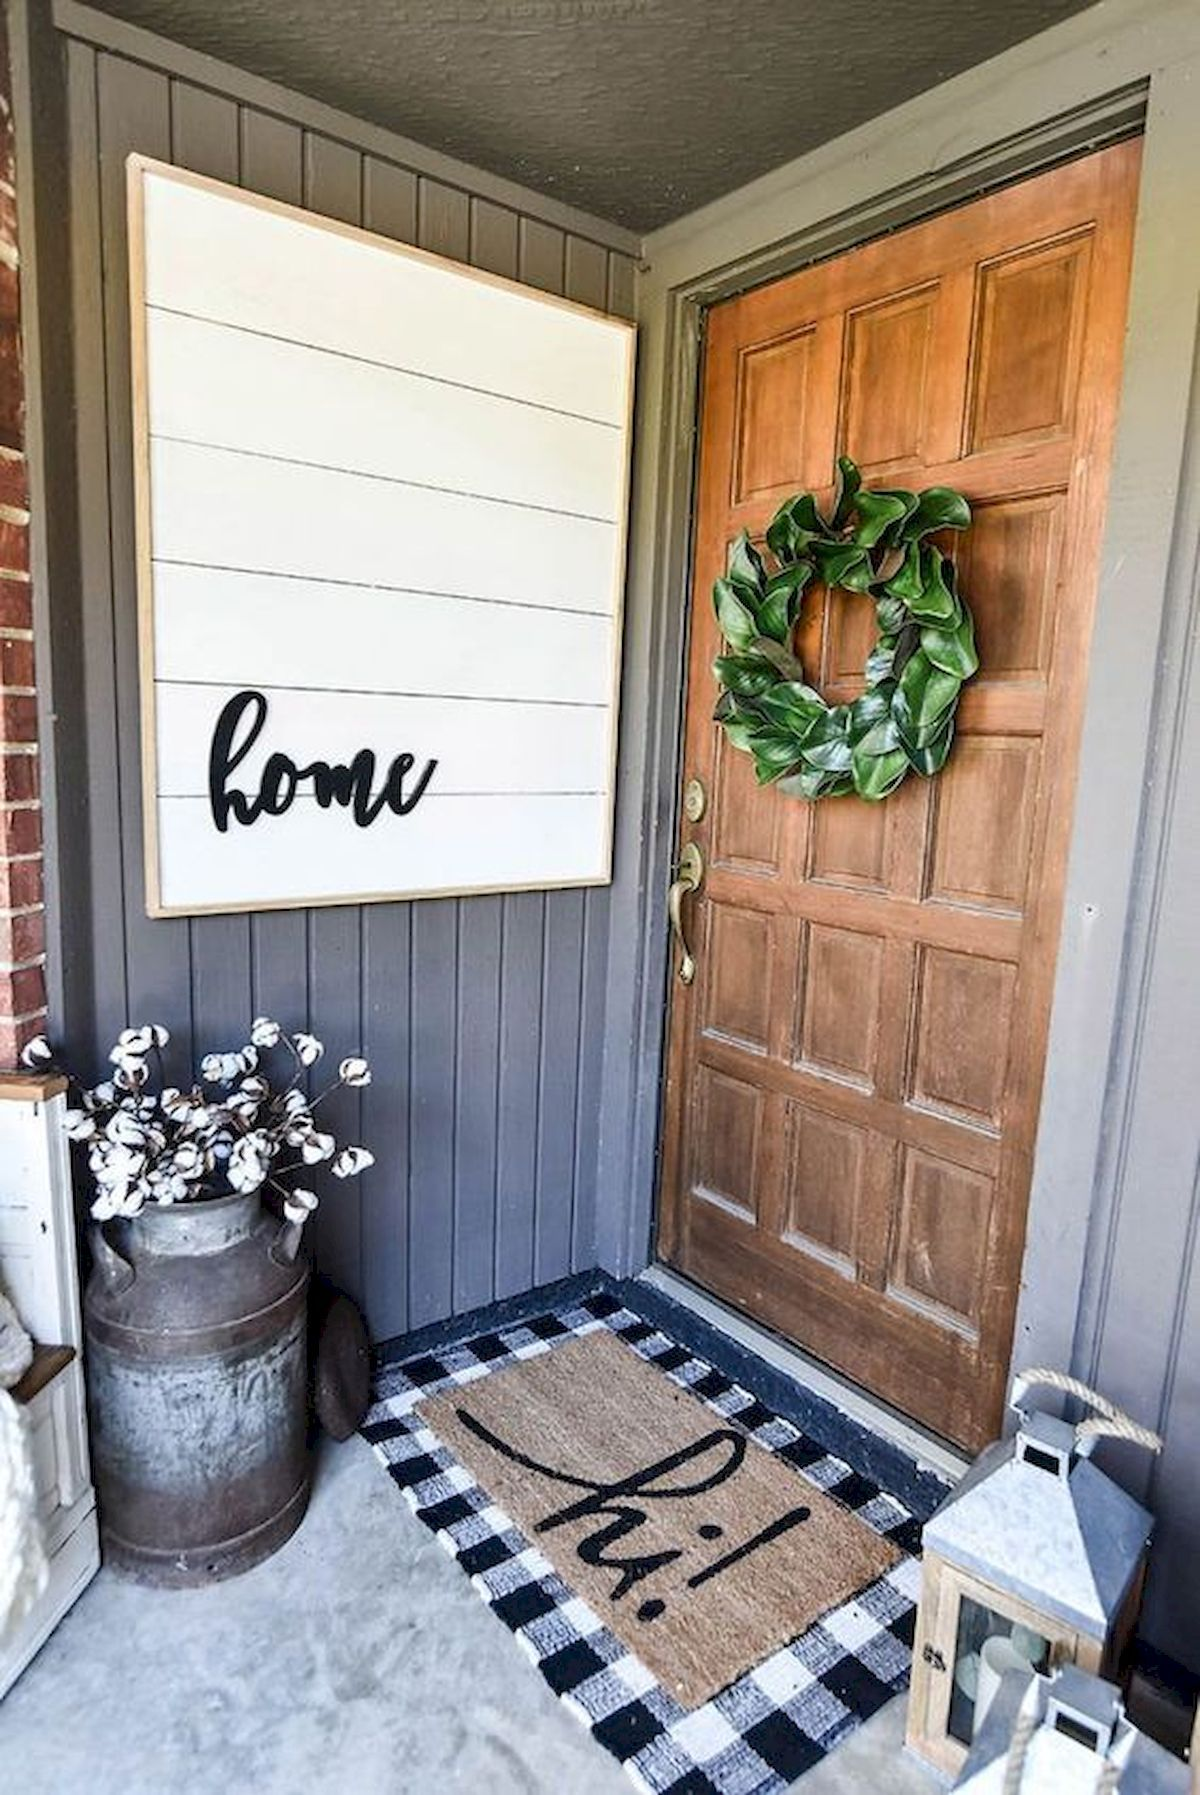 Pin By Jessica Santana On La Turquoise Front Porch Decorating Porch Decorating Porch Styles